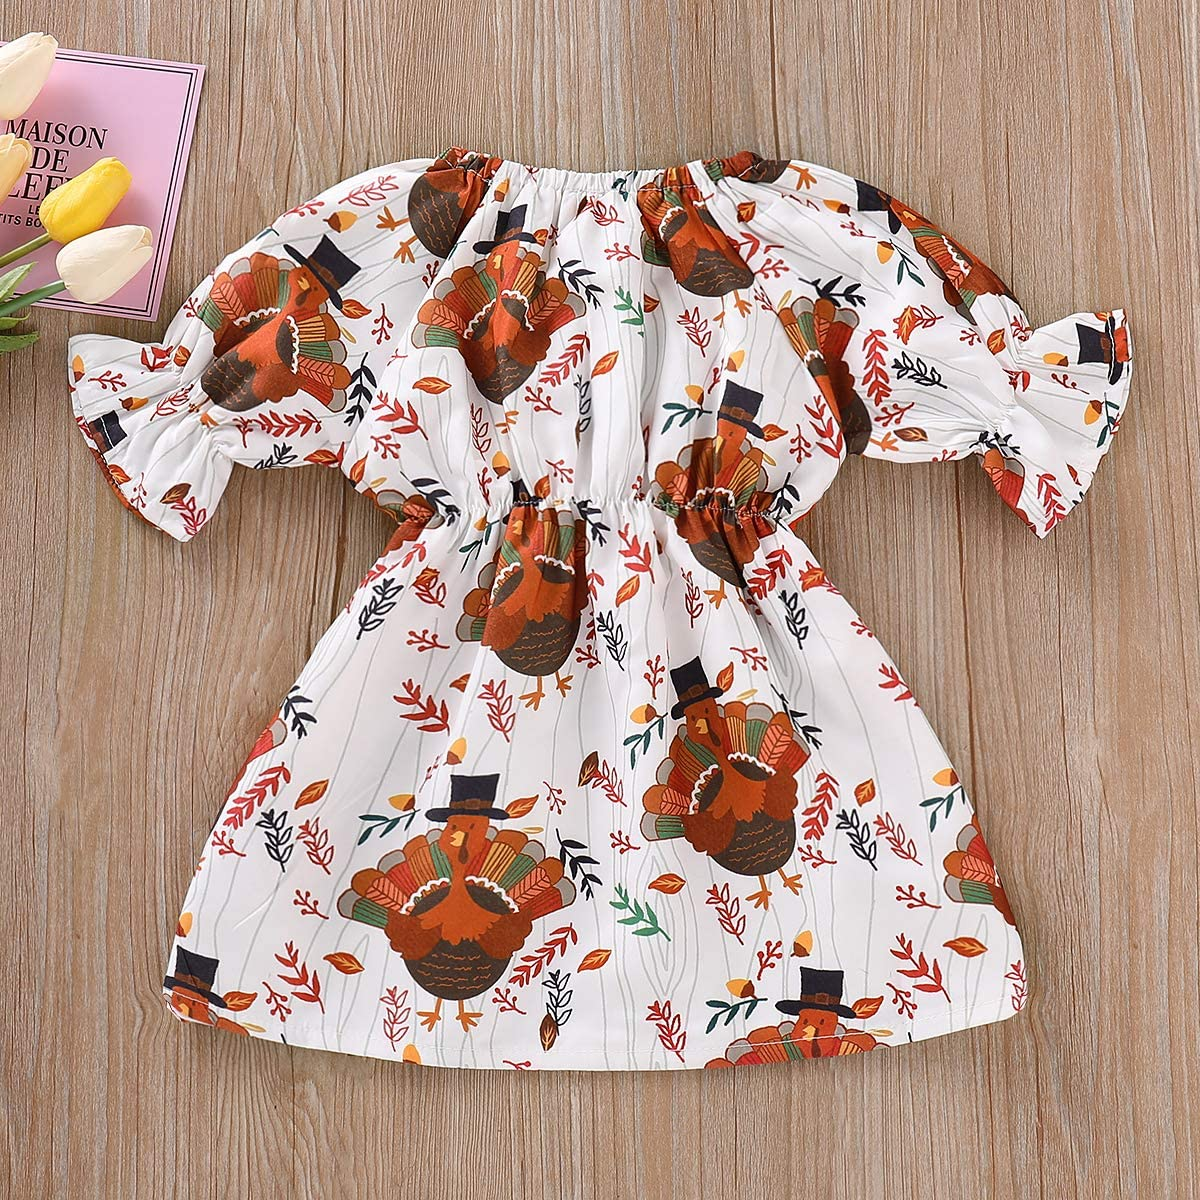 White ALLAIBB 3Pcs Newborn Baby Girl Outfit Classic Floral Print Romper Bowknot Tassels Size 66